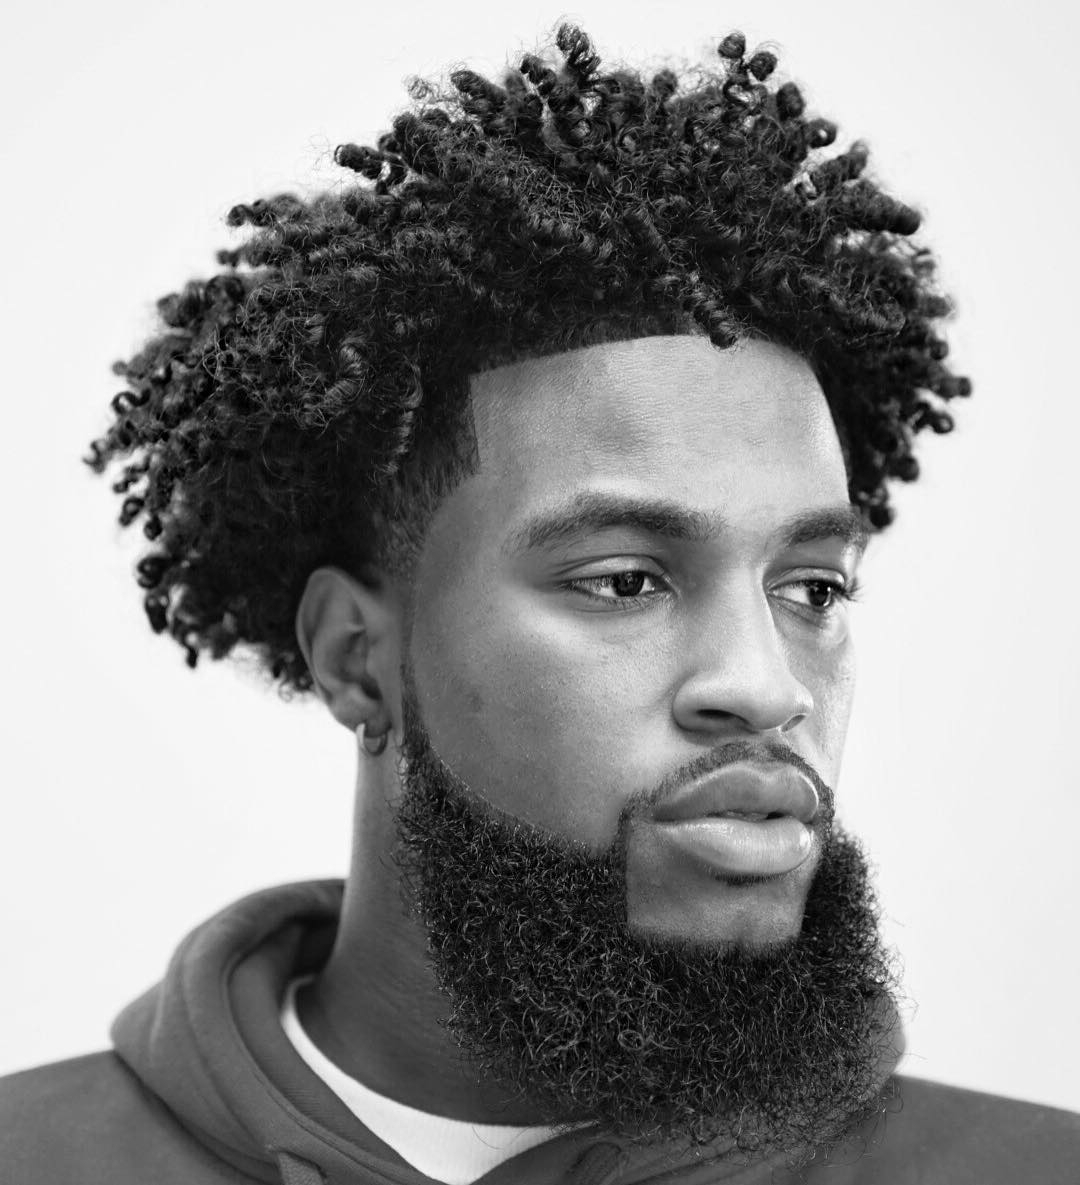 Cool Haircuts For Black Men For Super Short Hairstyles For Black Women (View 21 of 25)